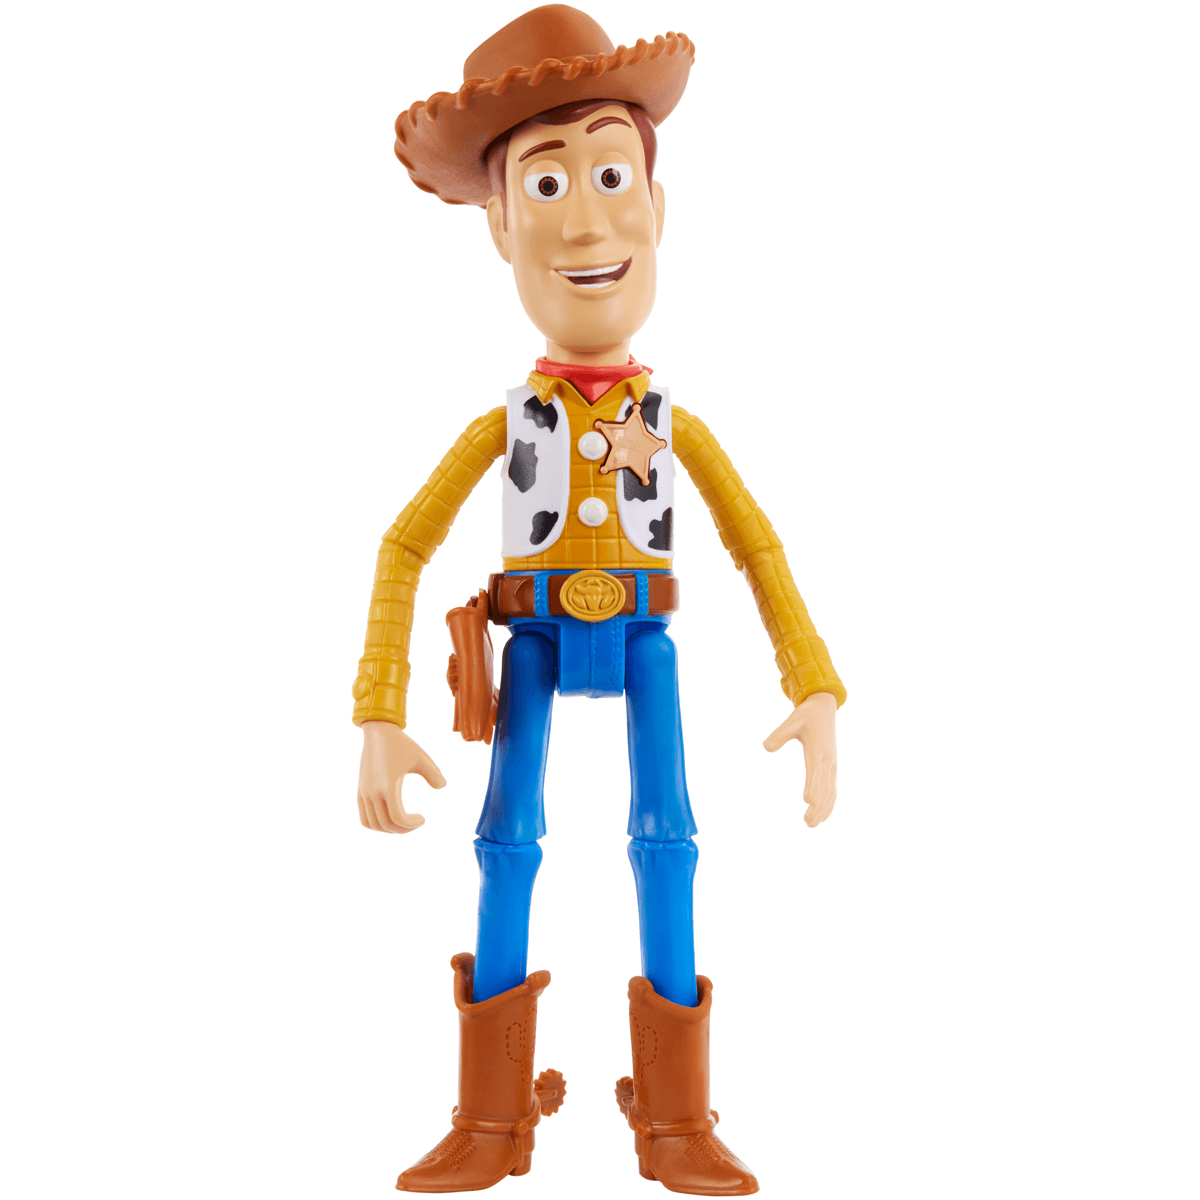 Toy Story 4 Characters Png